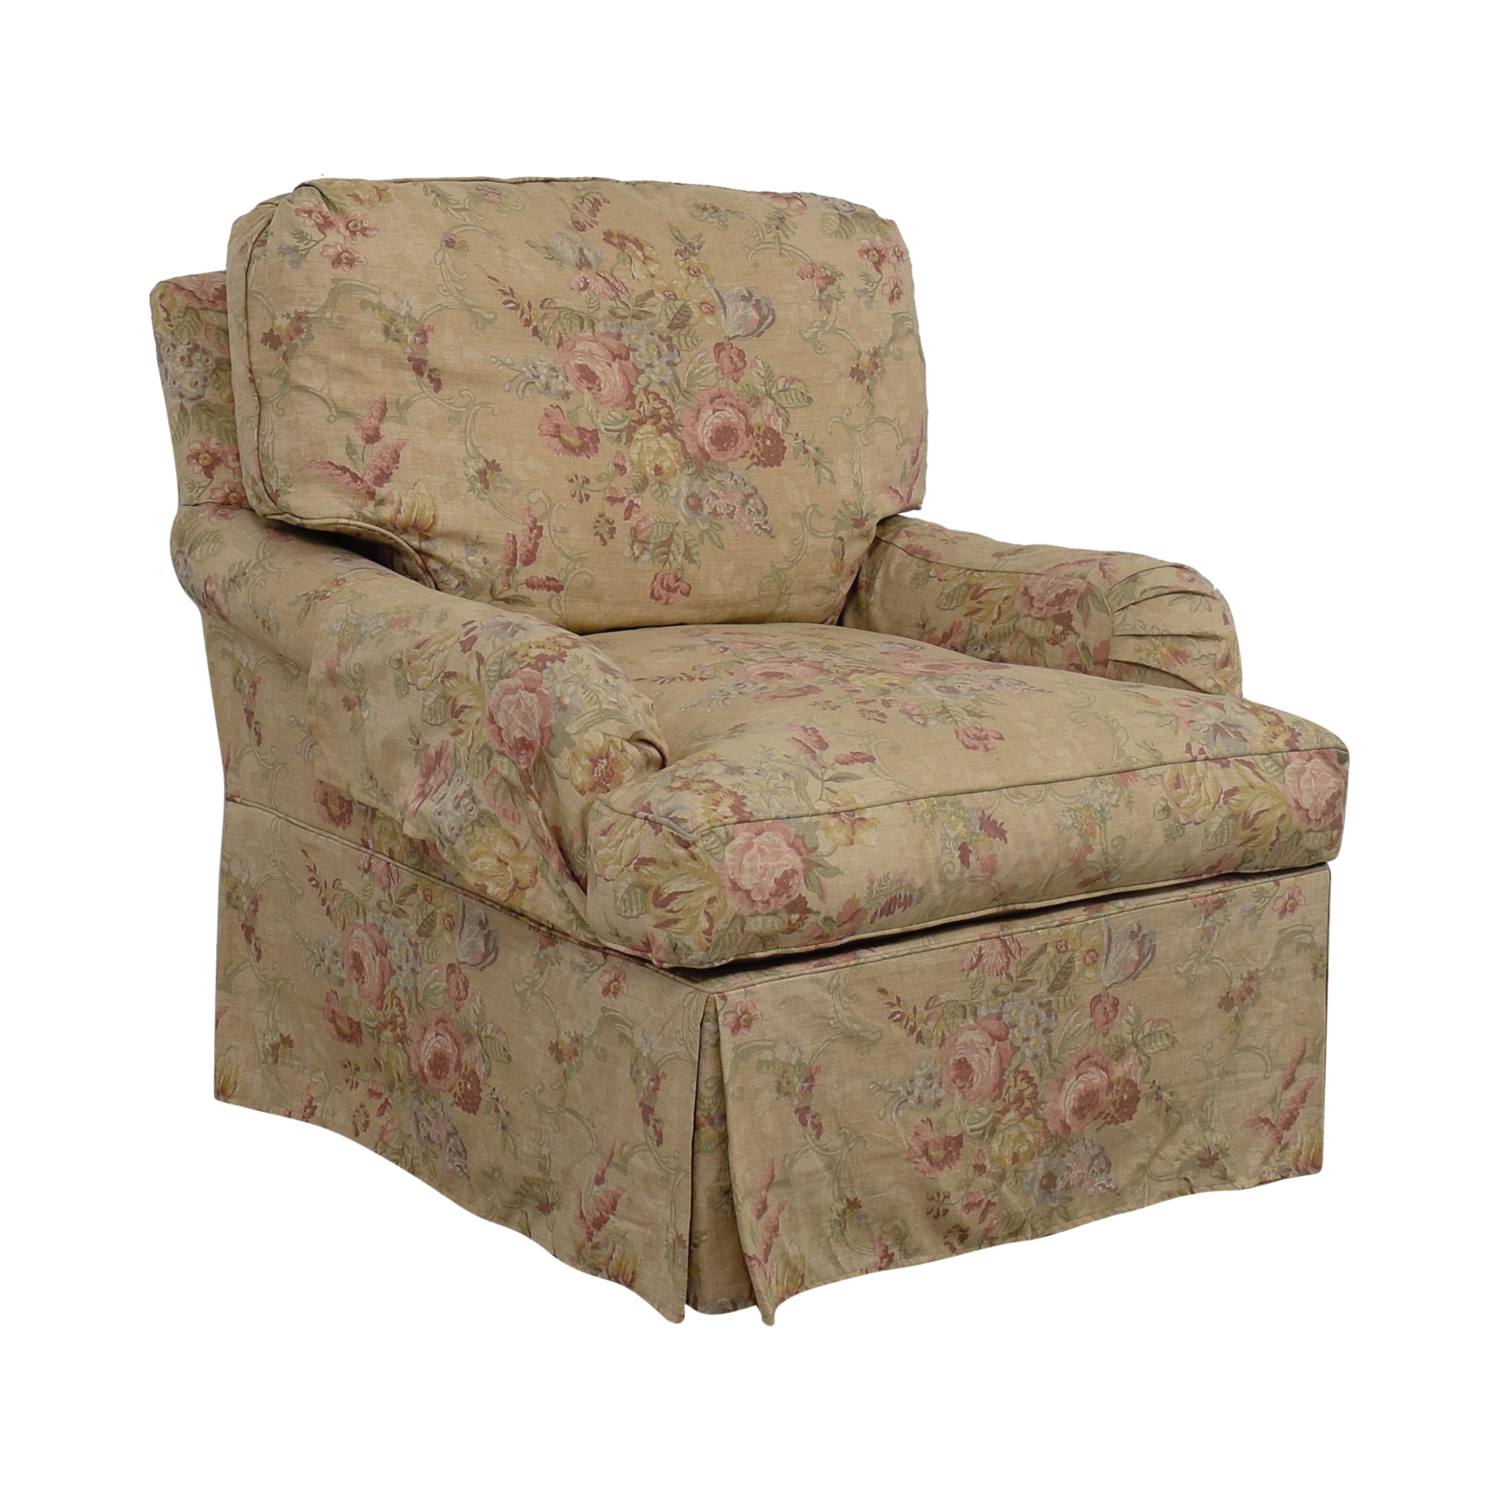 Floral Chairs 90 Off Domain Domain Beige And Pink Floral Accent Chair